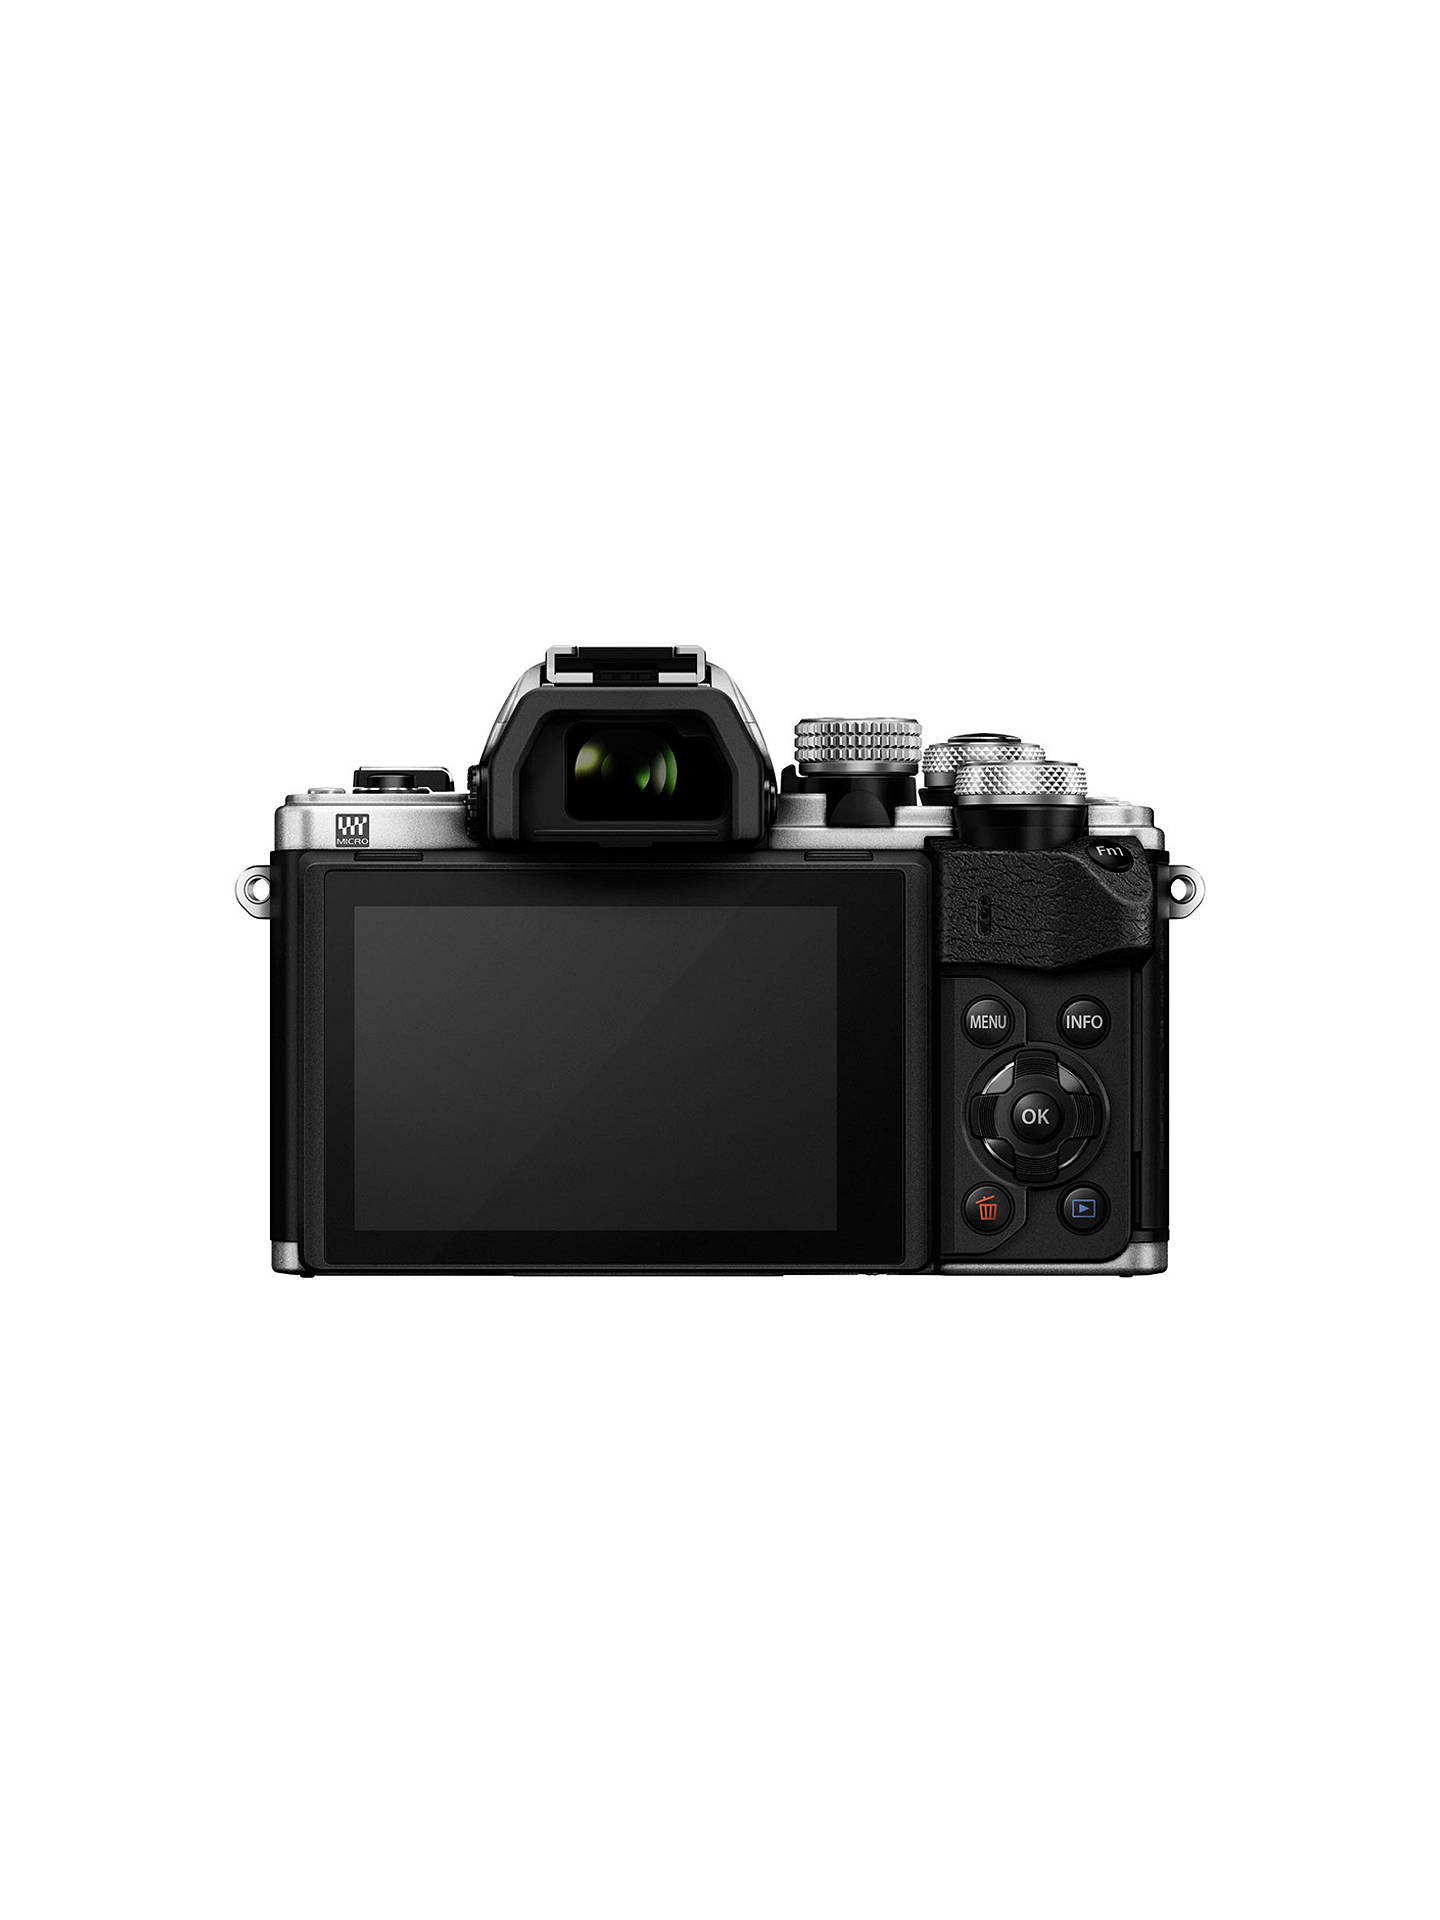 "BuyOlympus OM-D E-M10 Mark II Compact System Camera with 14-42mm EZ Lens, HD 1080p, 16.1MP, Wi-Fi, OLED EVF, 3"" LCD Touch Screen, Silver Online at johnlewis.com"